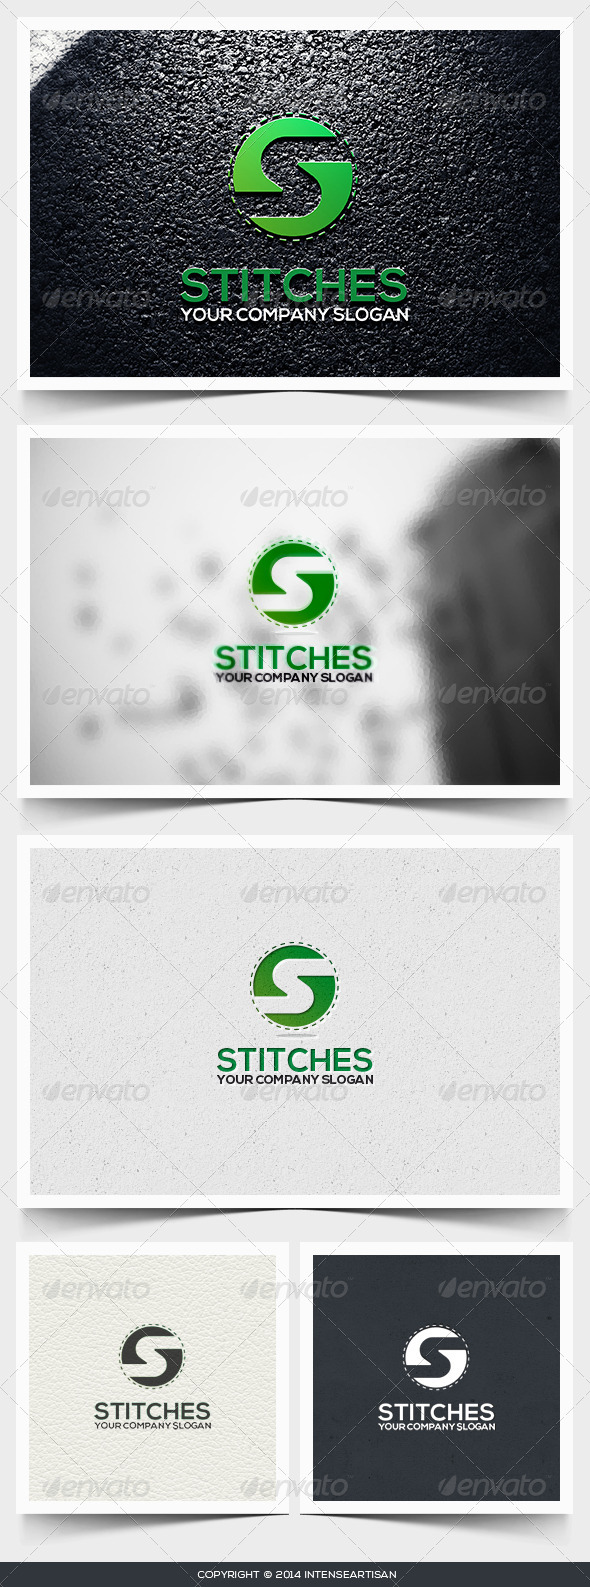 Stitches Logo Template